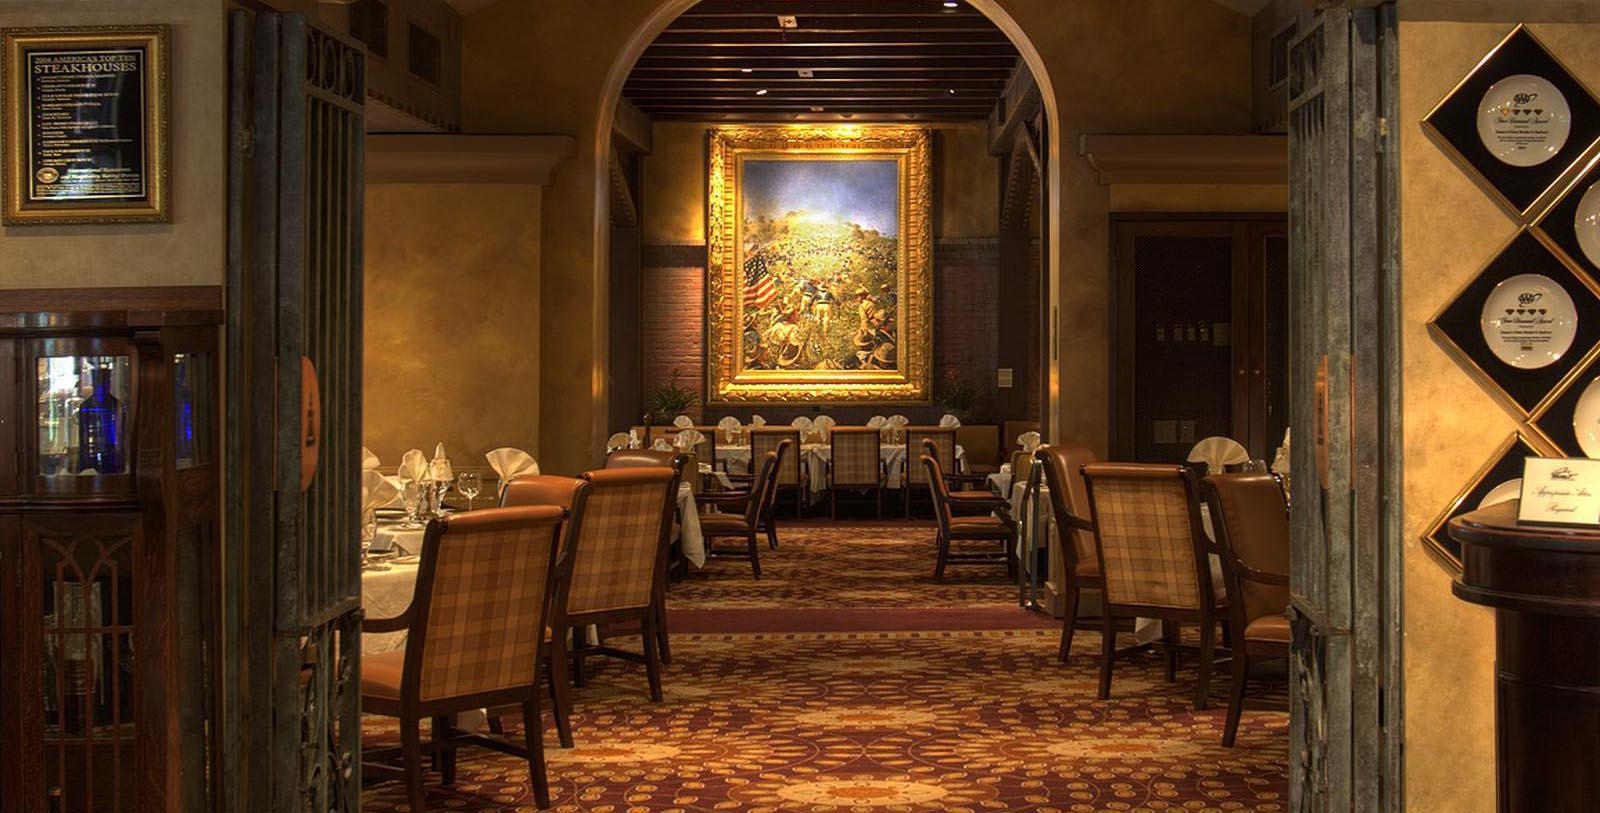 Image of Dining Room at Duane's Prime Steaks and Seafood at The Mission Inn Hotel & Spa, 1876, Member of Historic Hotels of America, in Riverside, California, Taste